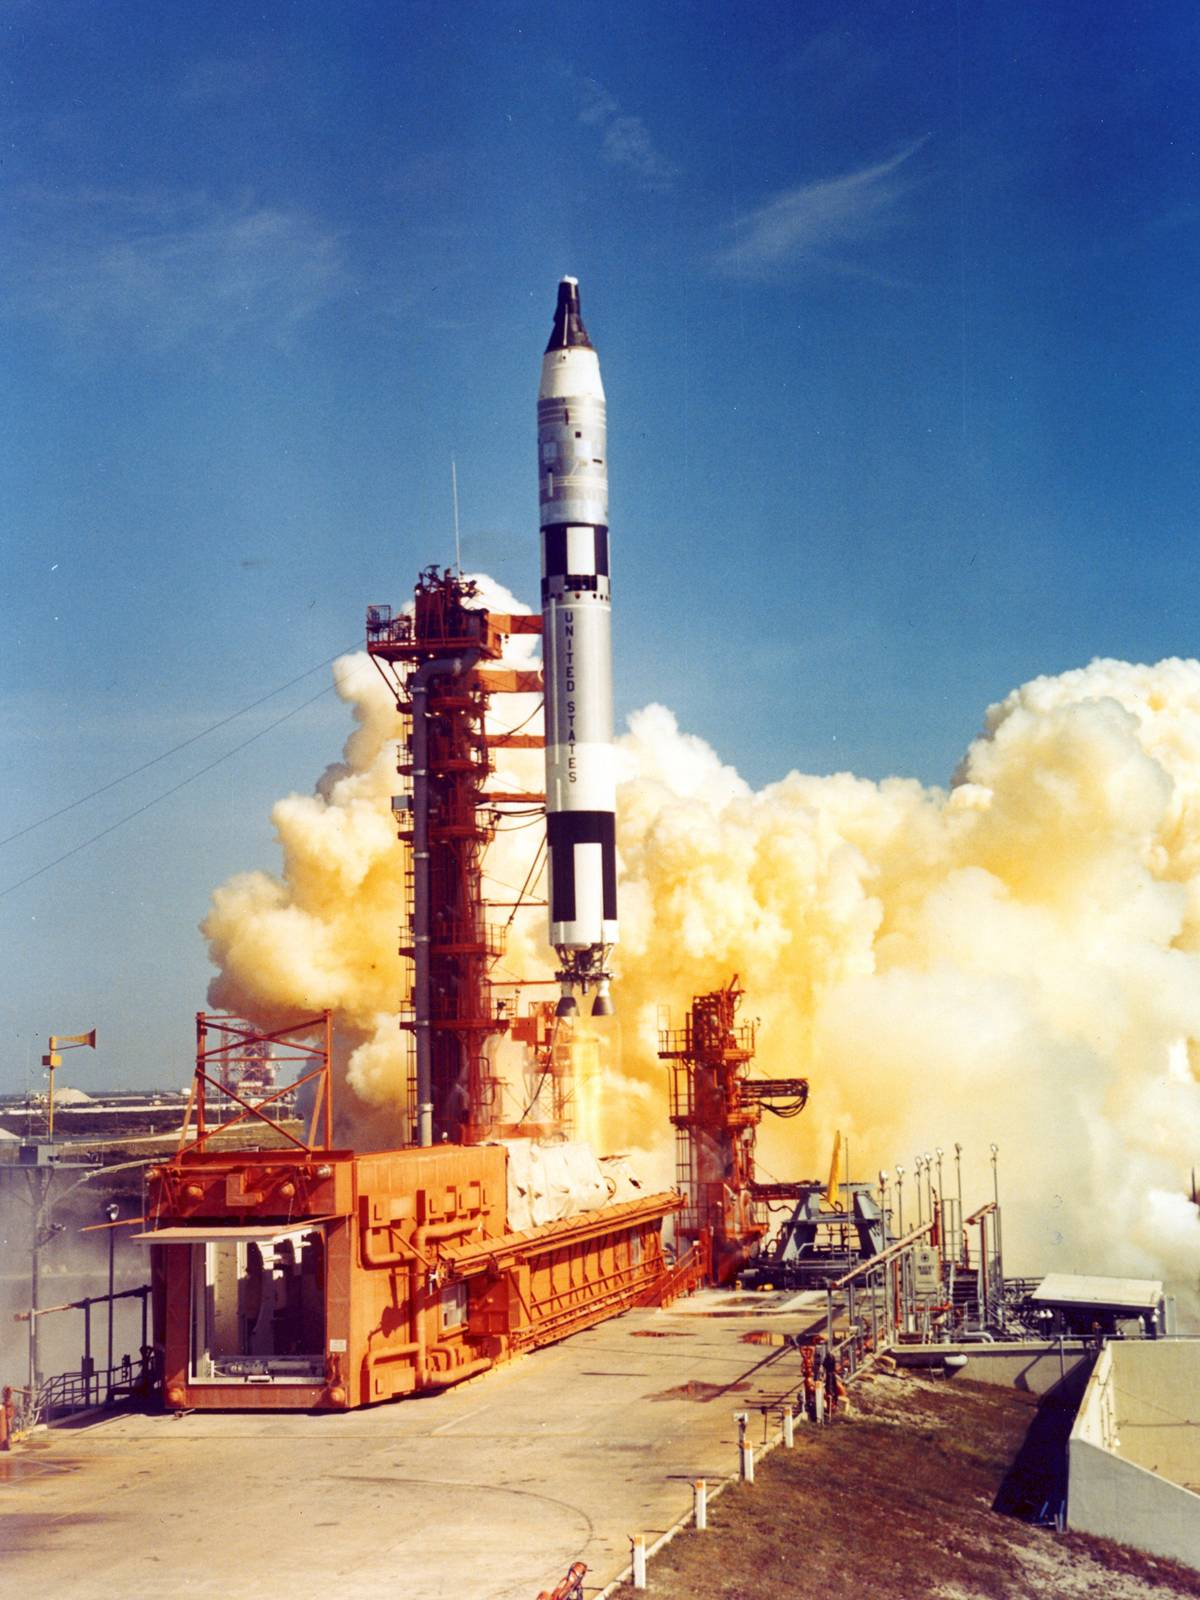 Why Did NASA Choose an Untested Missile to Launch Gemini?